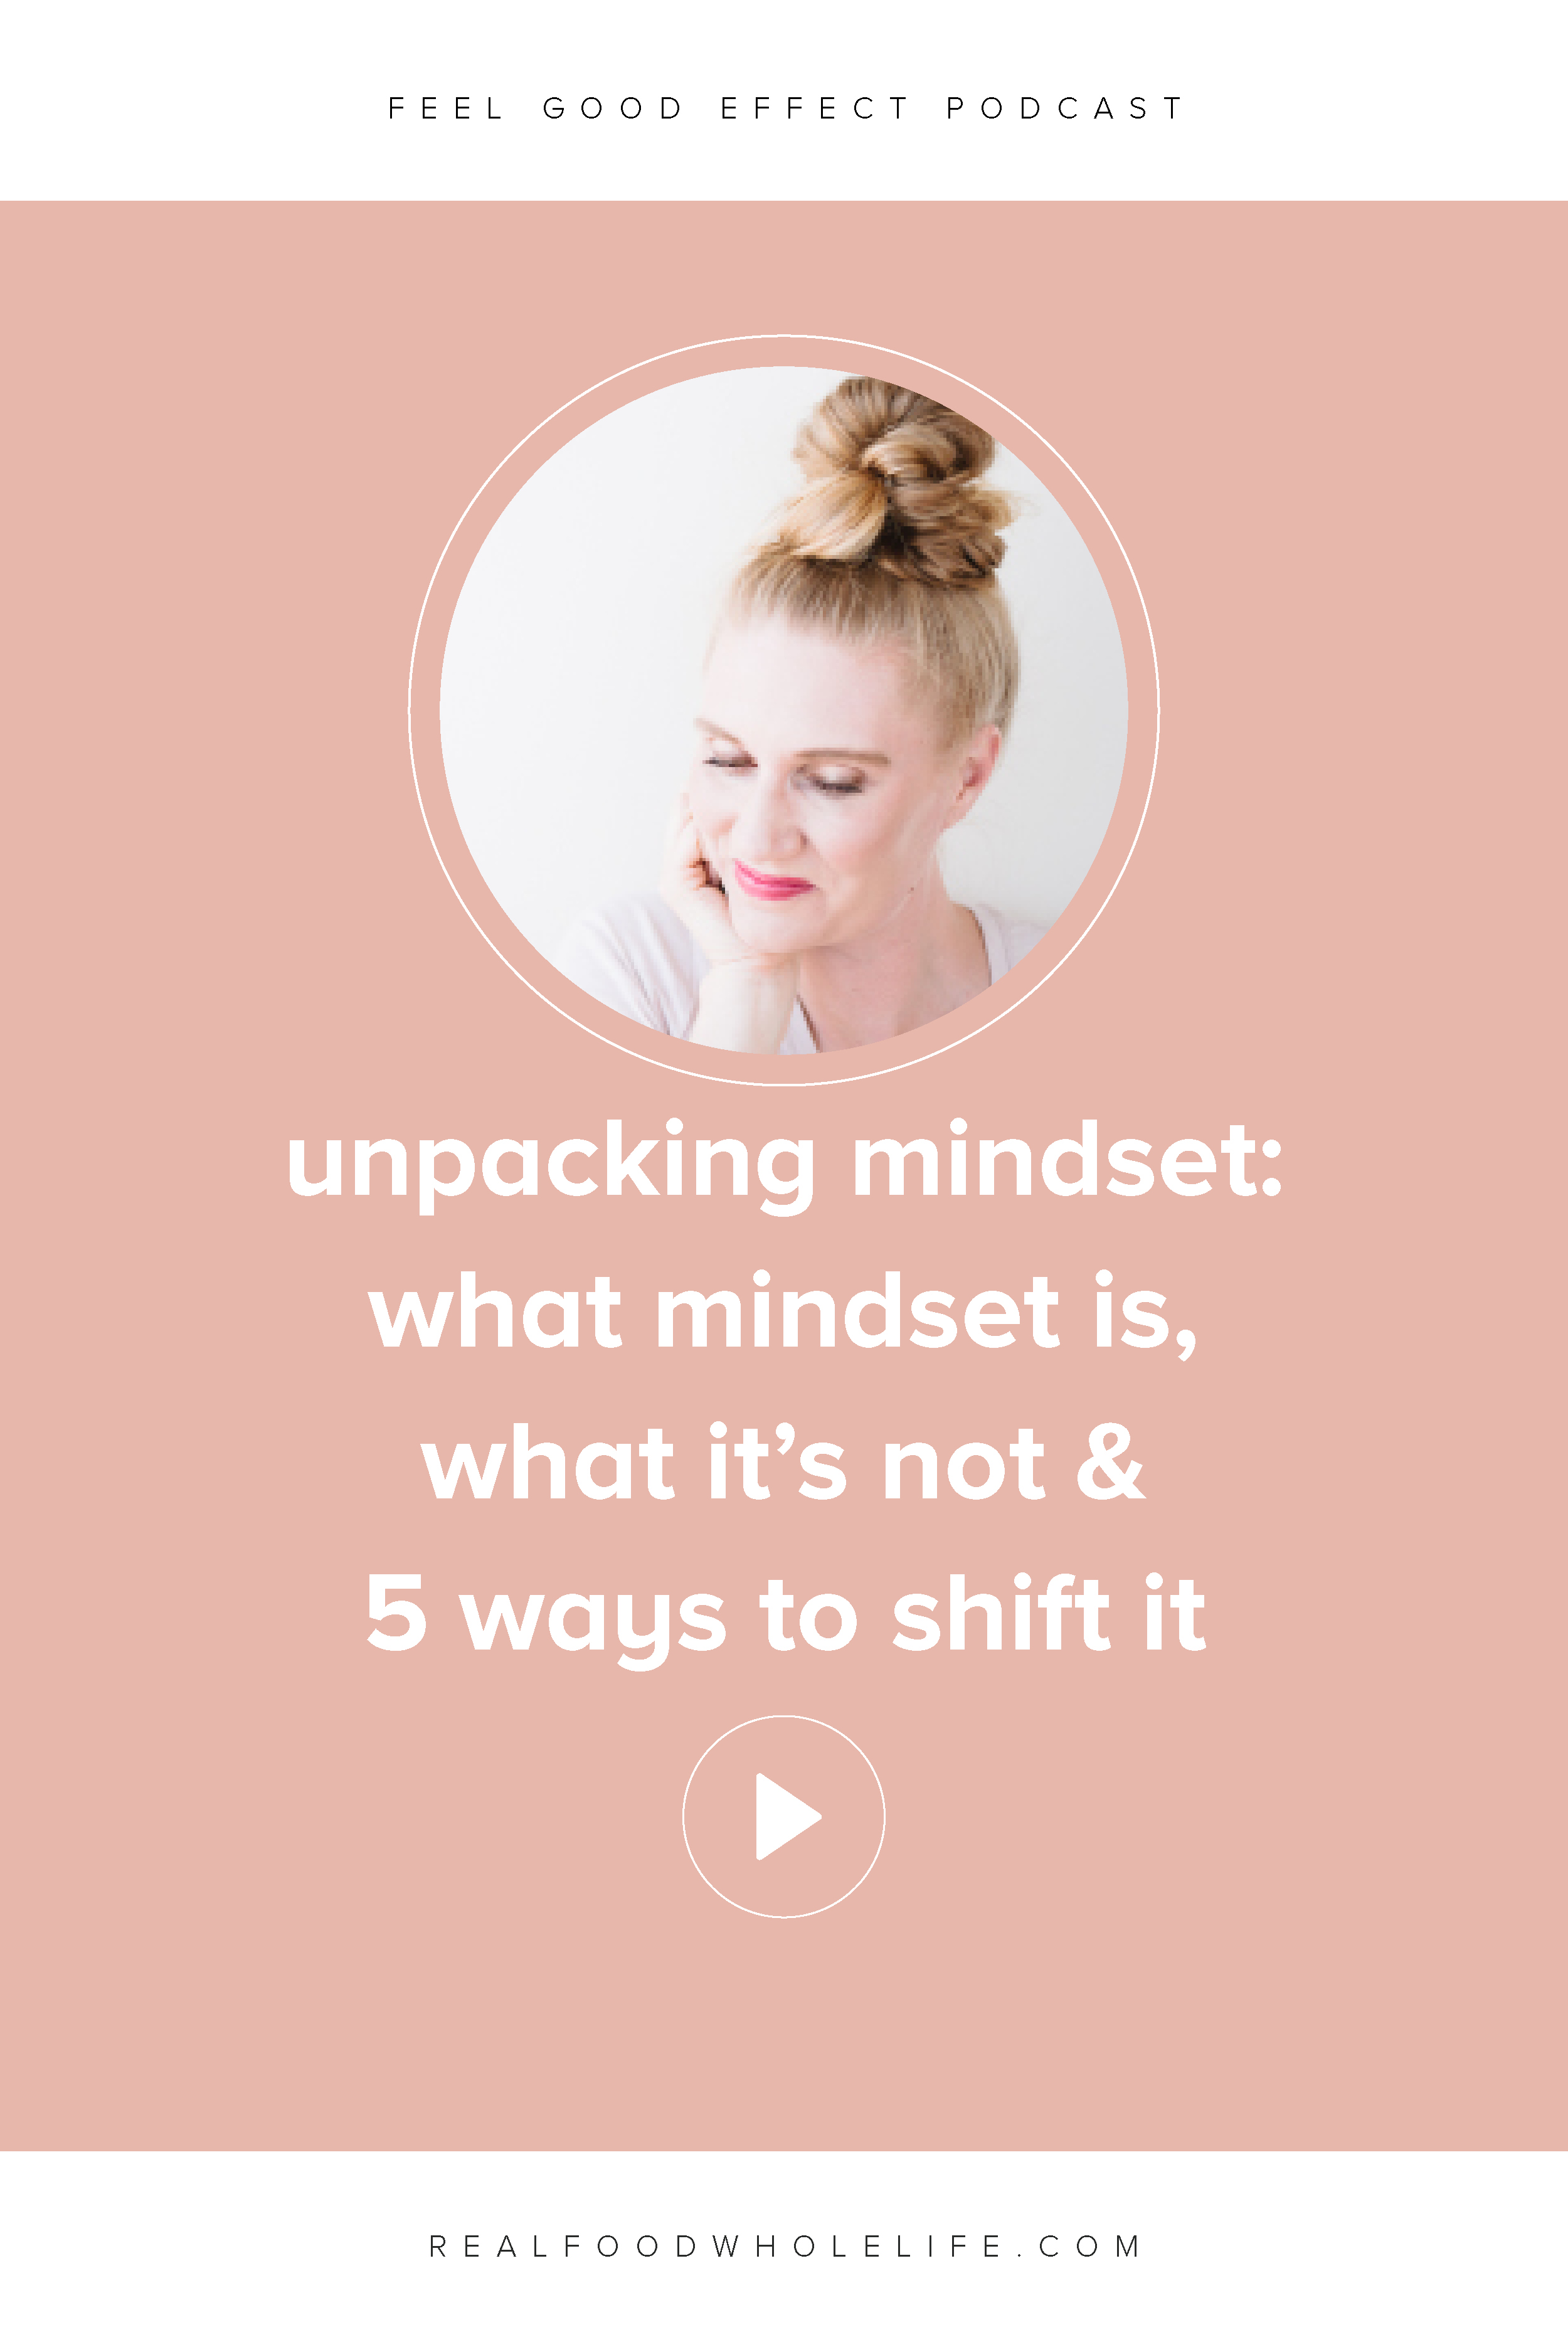 Unpacking Mindset- What Mindset is, What it's Not, and How to Shift it